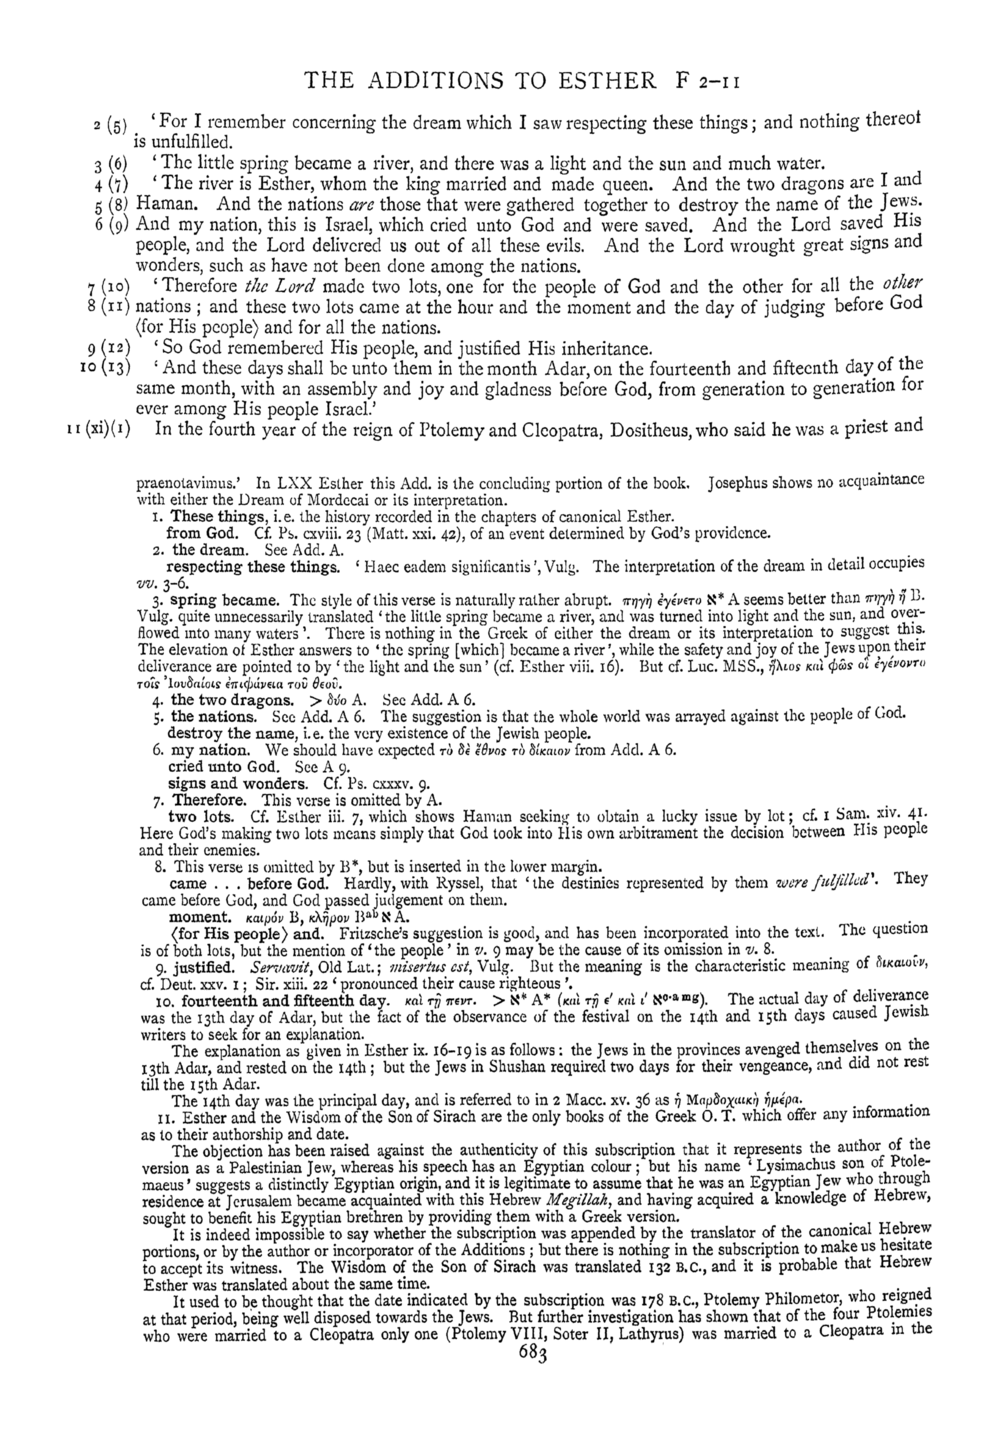 Image of page 683